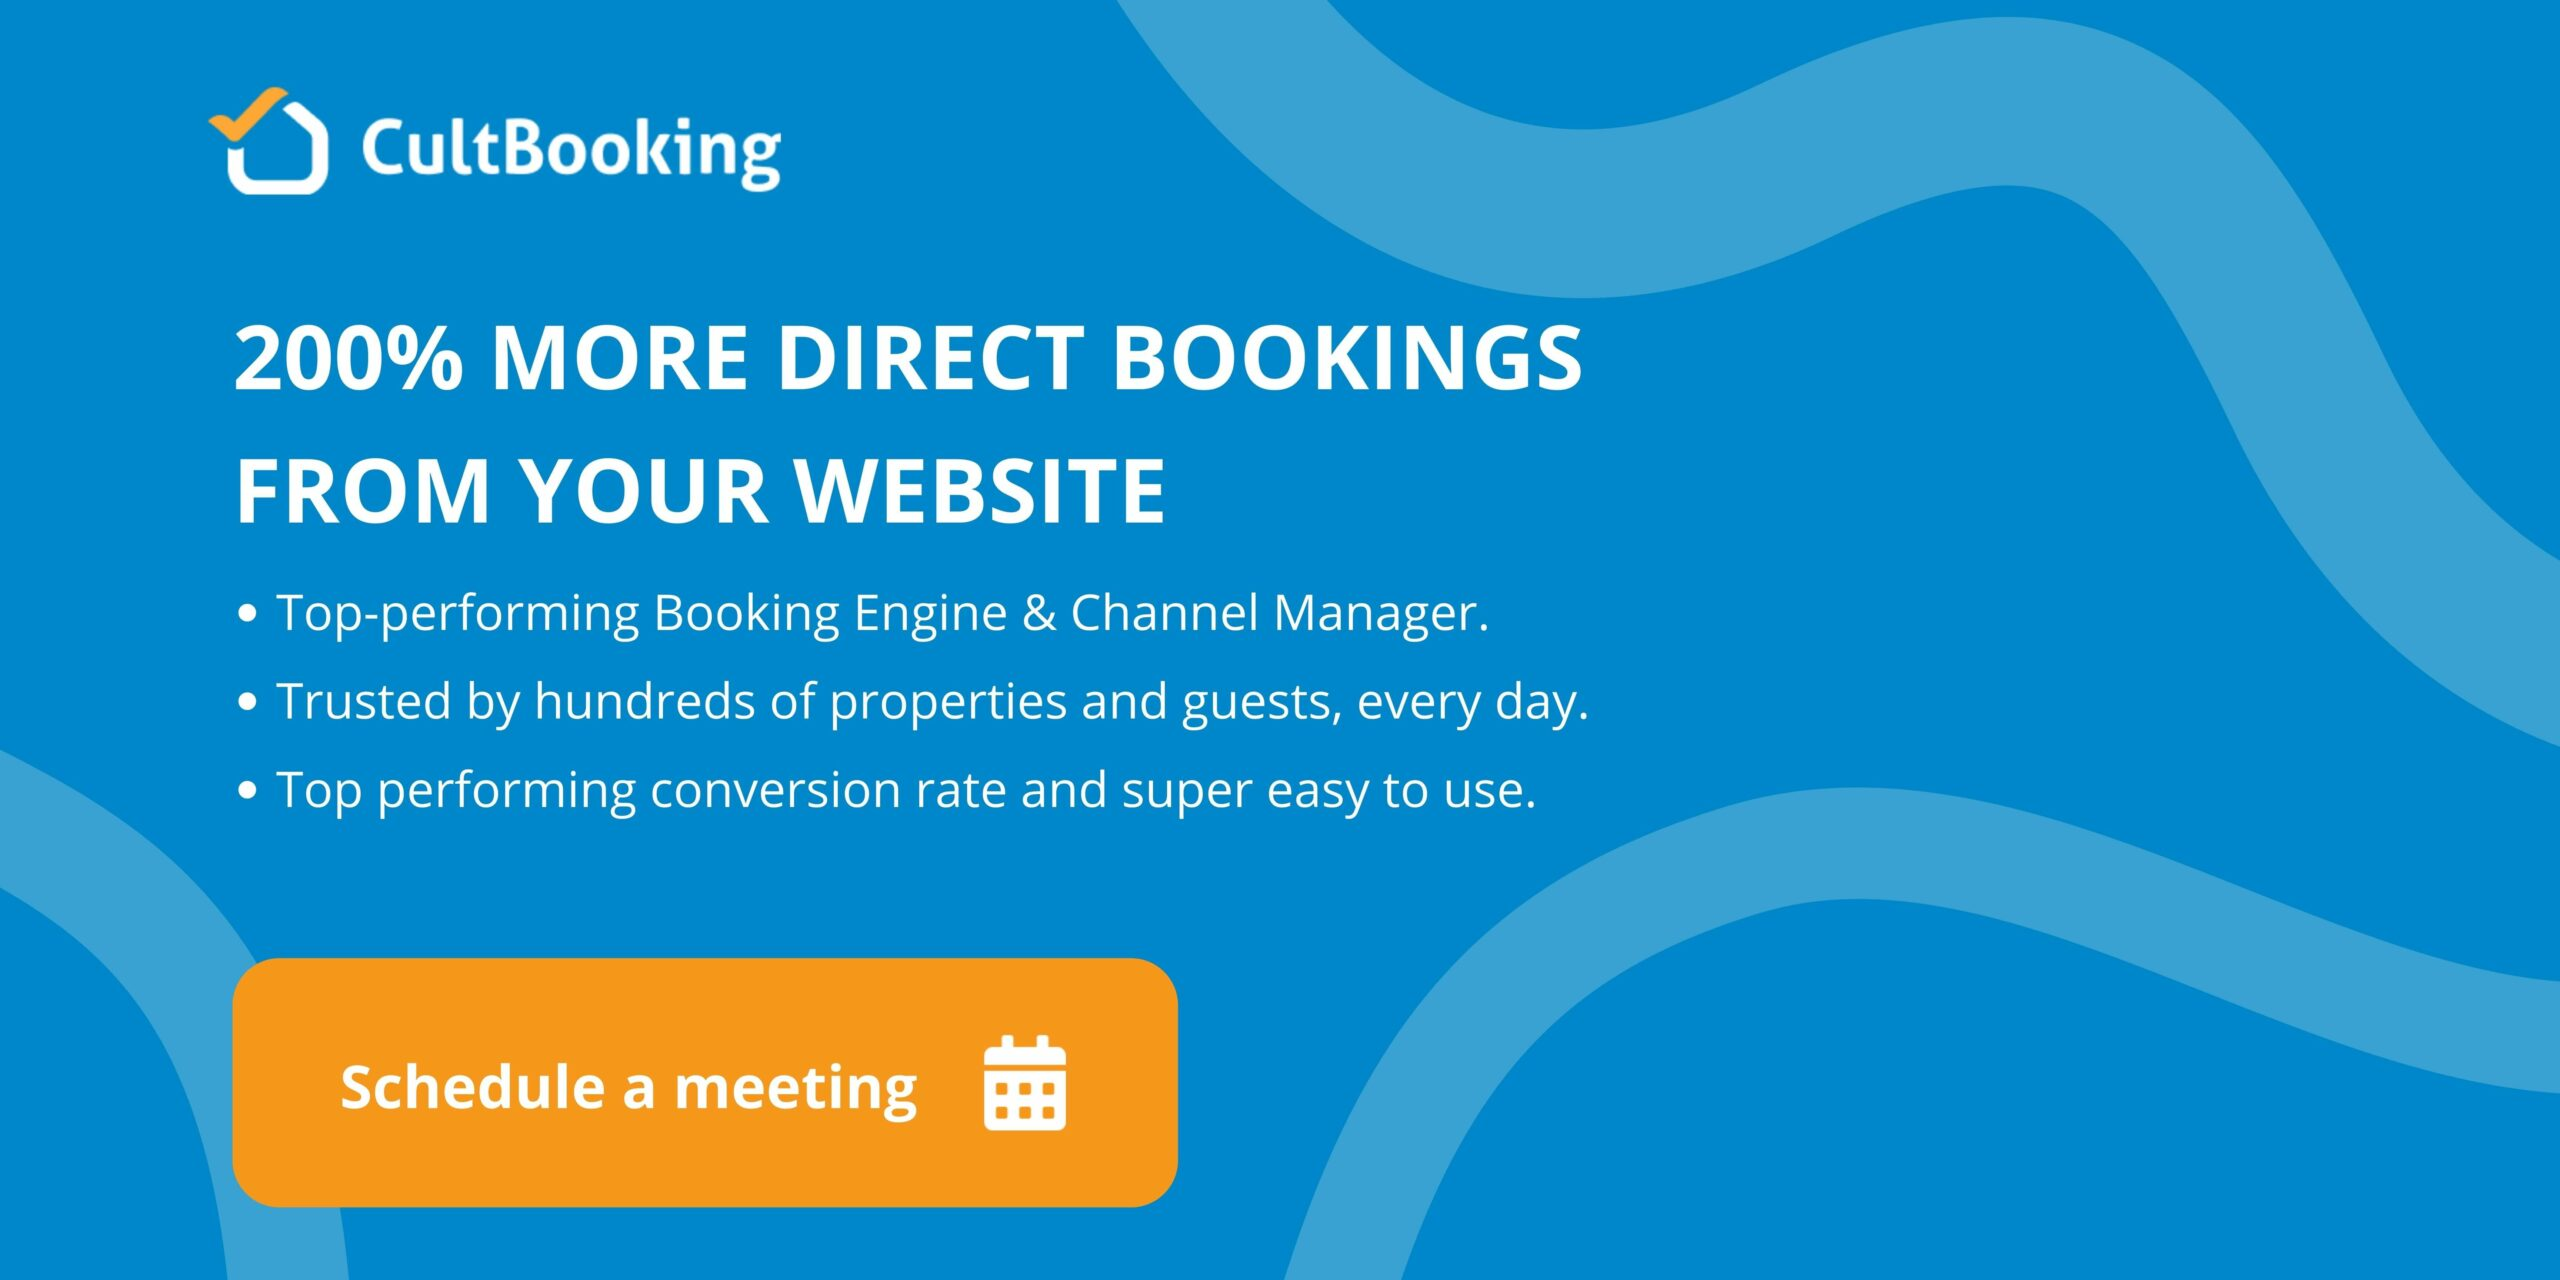 cultbooking - book a meeting - direct bookings